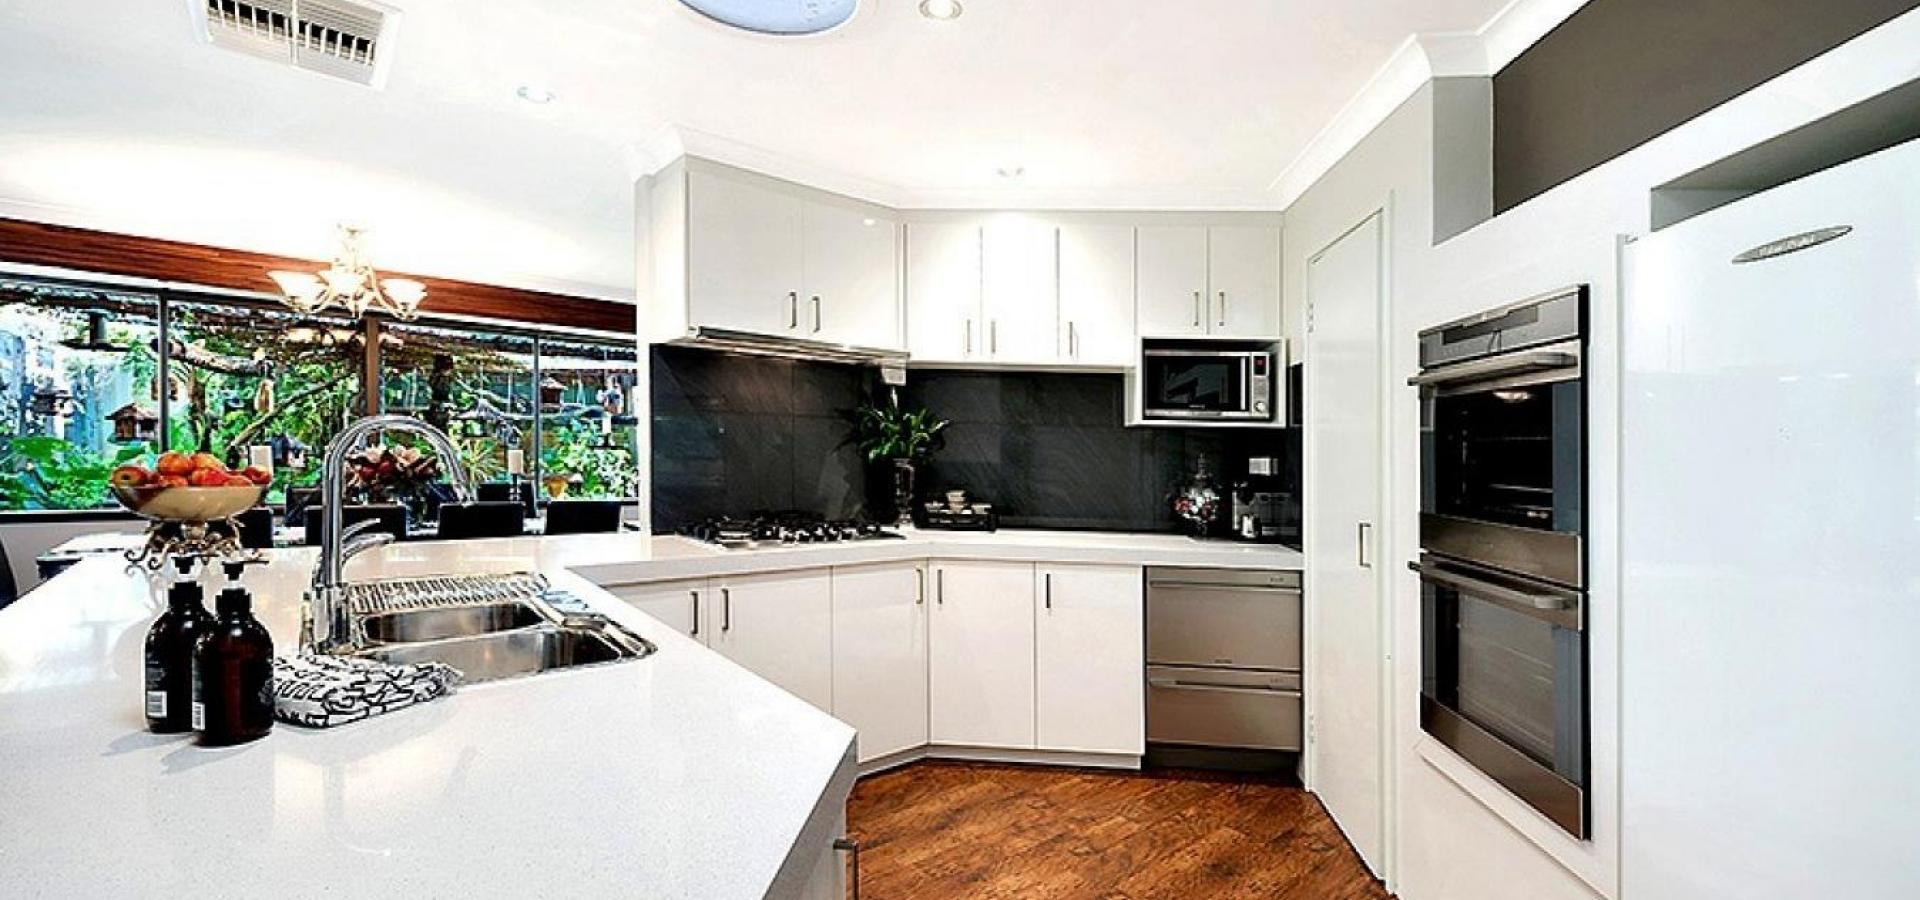 STUNNING RENOVATED HOME ON POTENTIALLY SUBDIVIDABLE BLOCK!